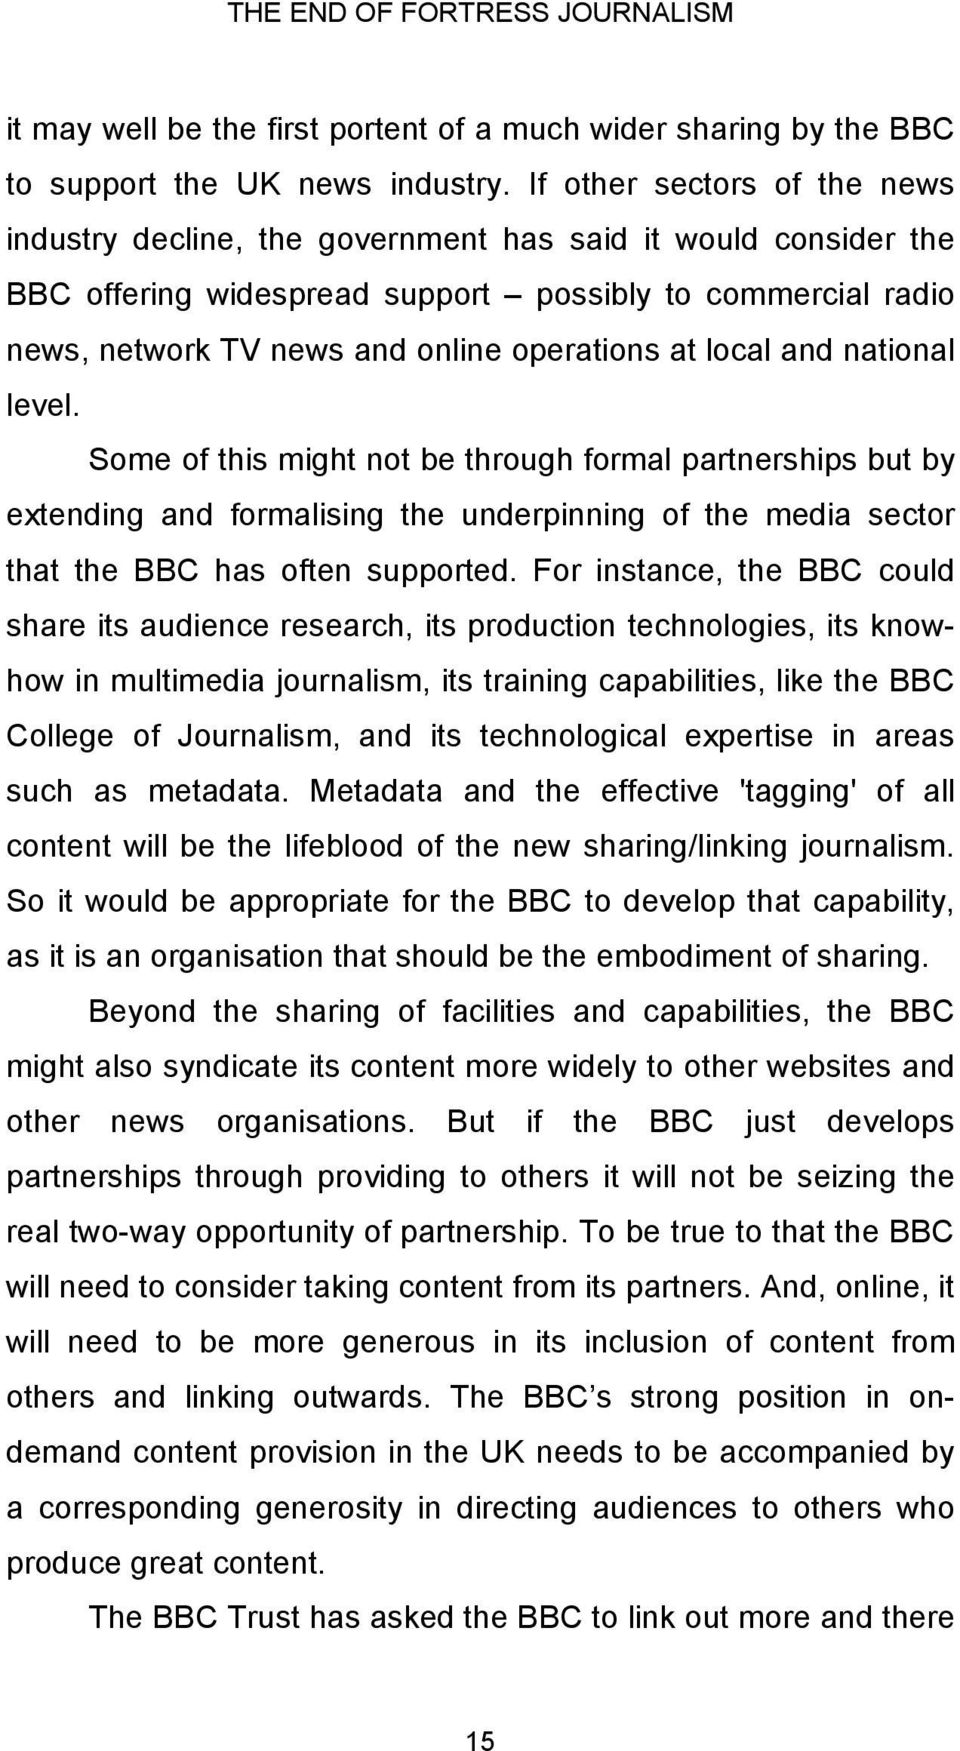 at local and national level. Some of this might not be through formal partnerships but by extending and formalising the underpinning of the media sector that the BBC has often supported.